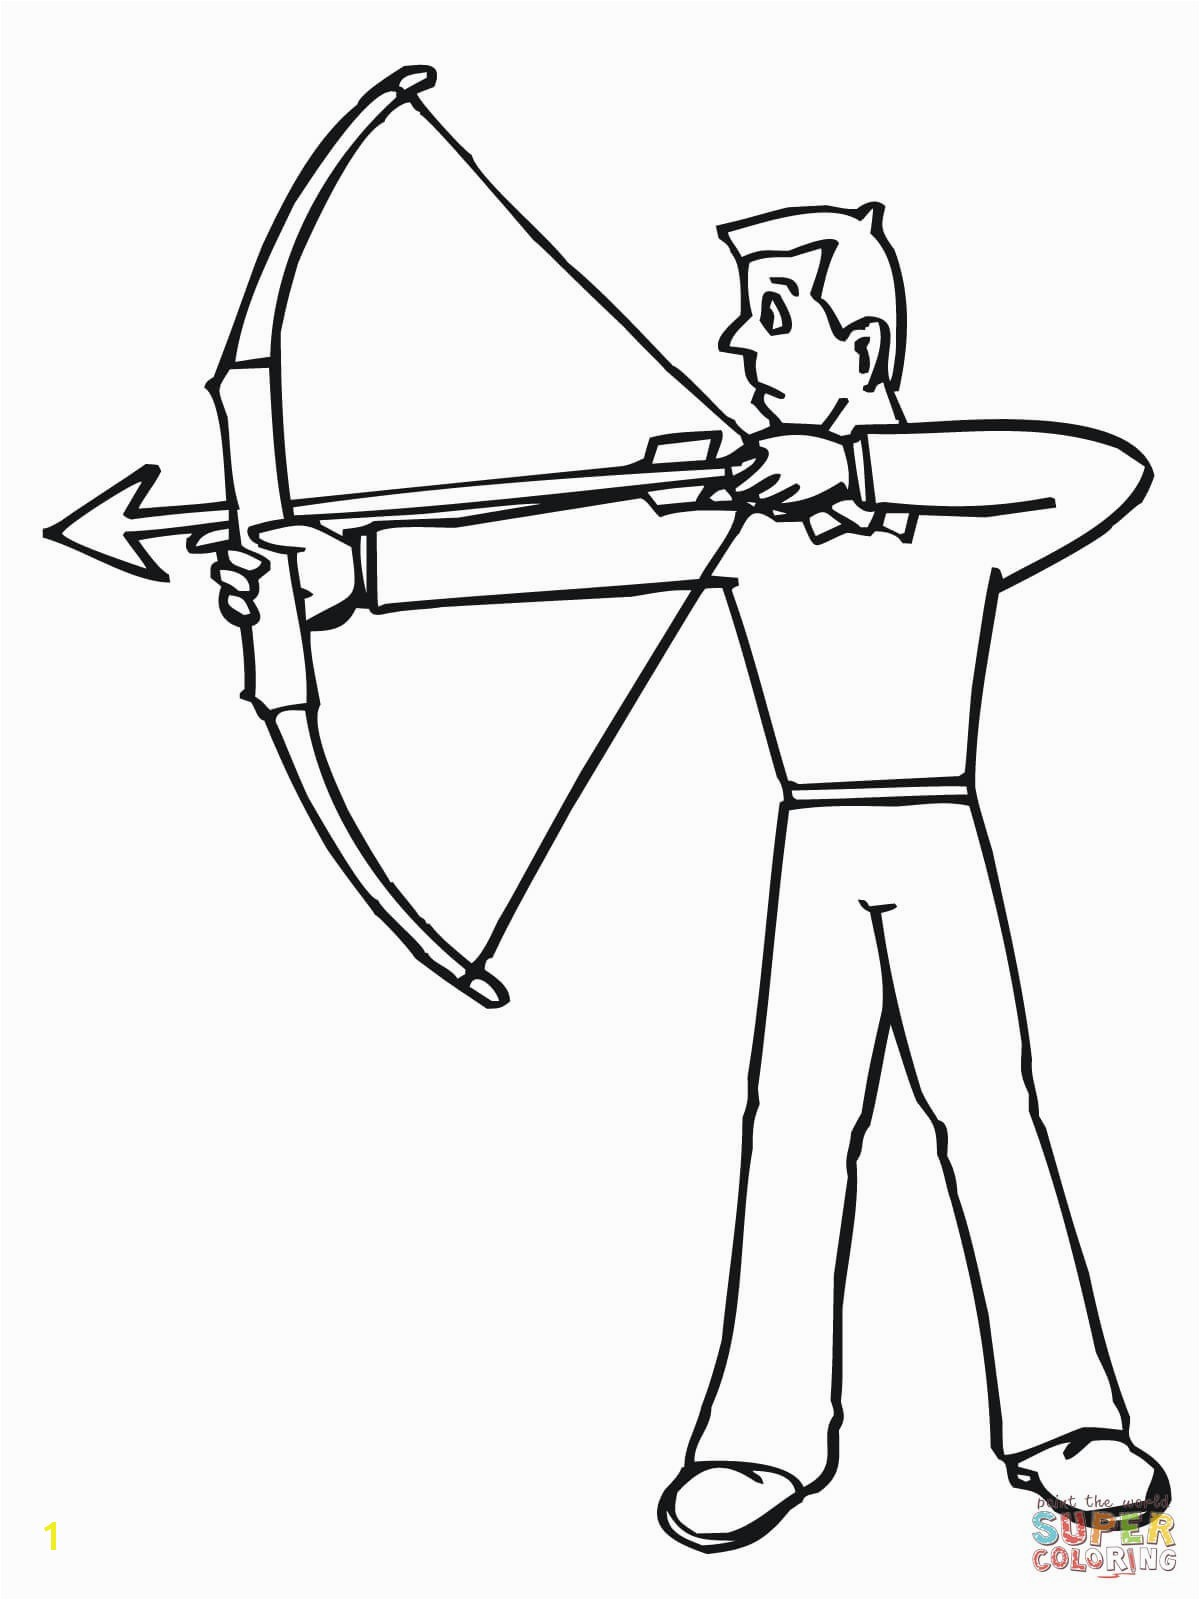 Pistol Pete Coloring Page New Shooting Tar Drawing at Getdrawings Pistol Pete Coloring Page Lovely